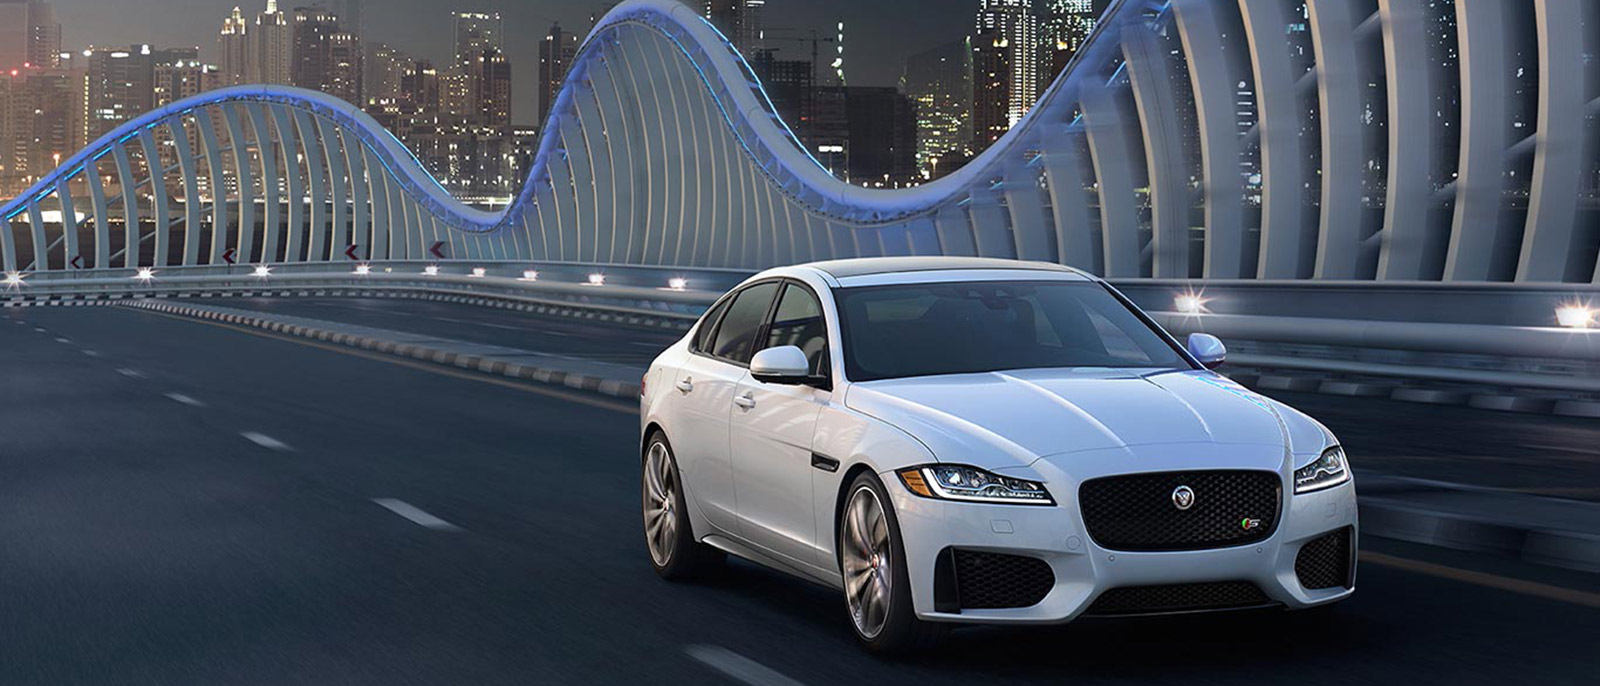 Jaguar XF Driving